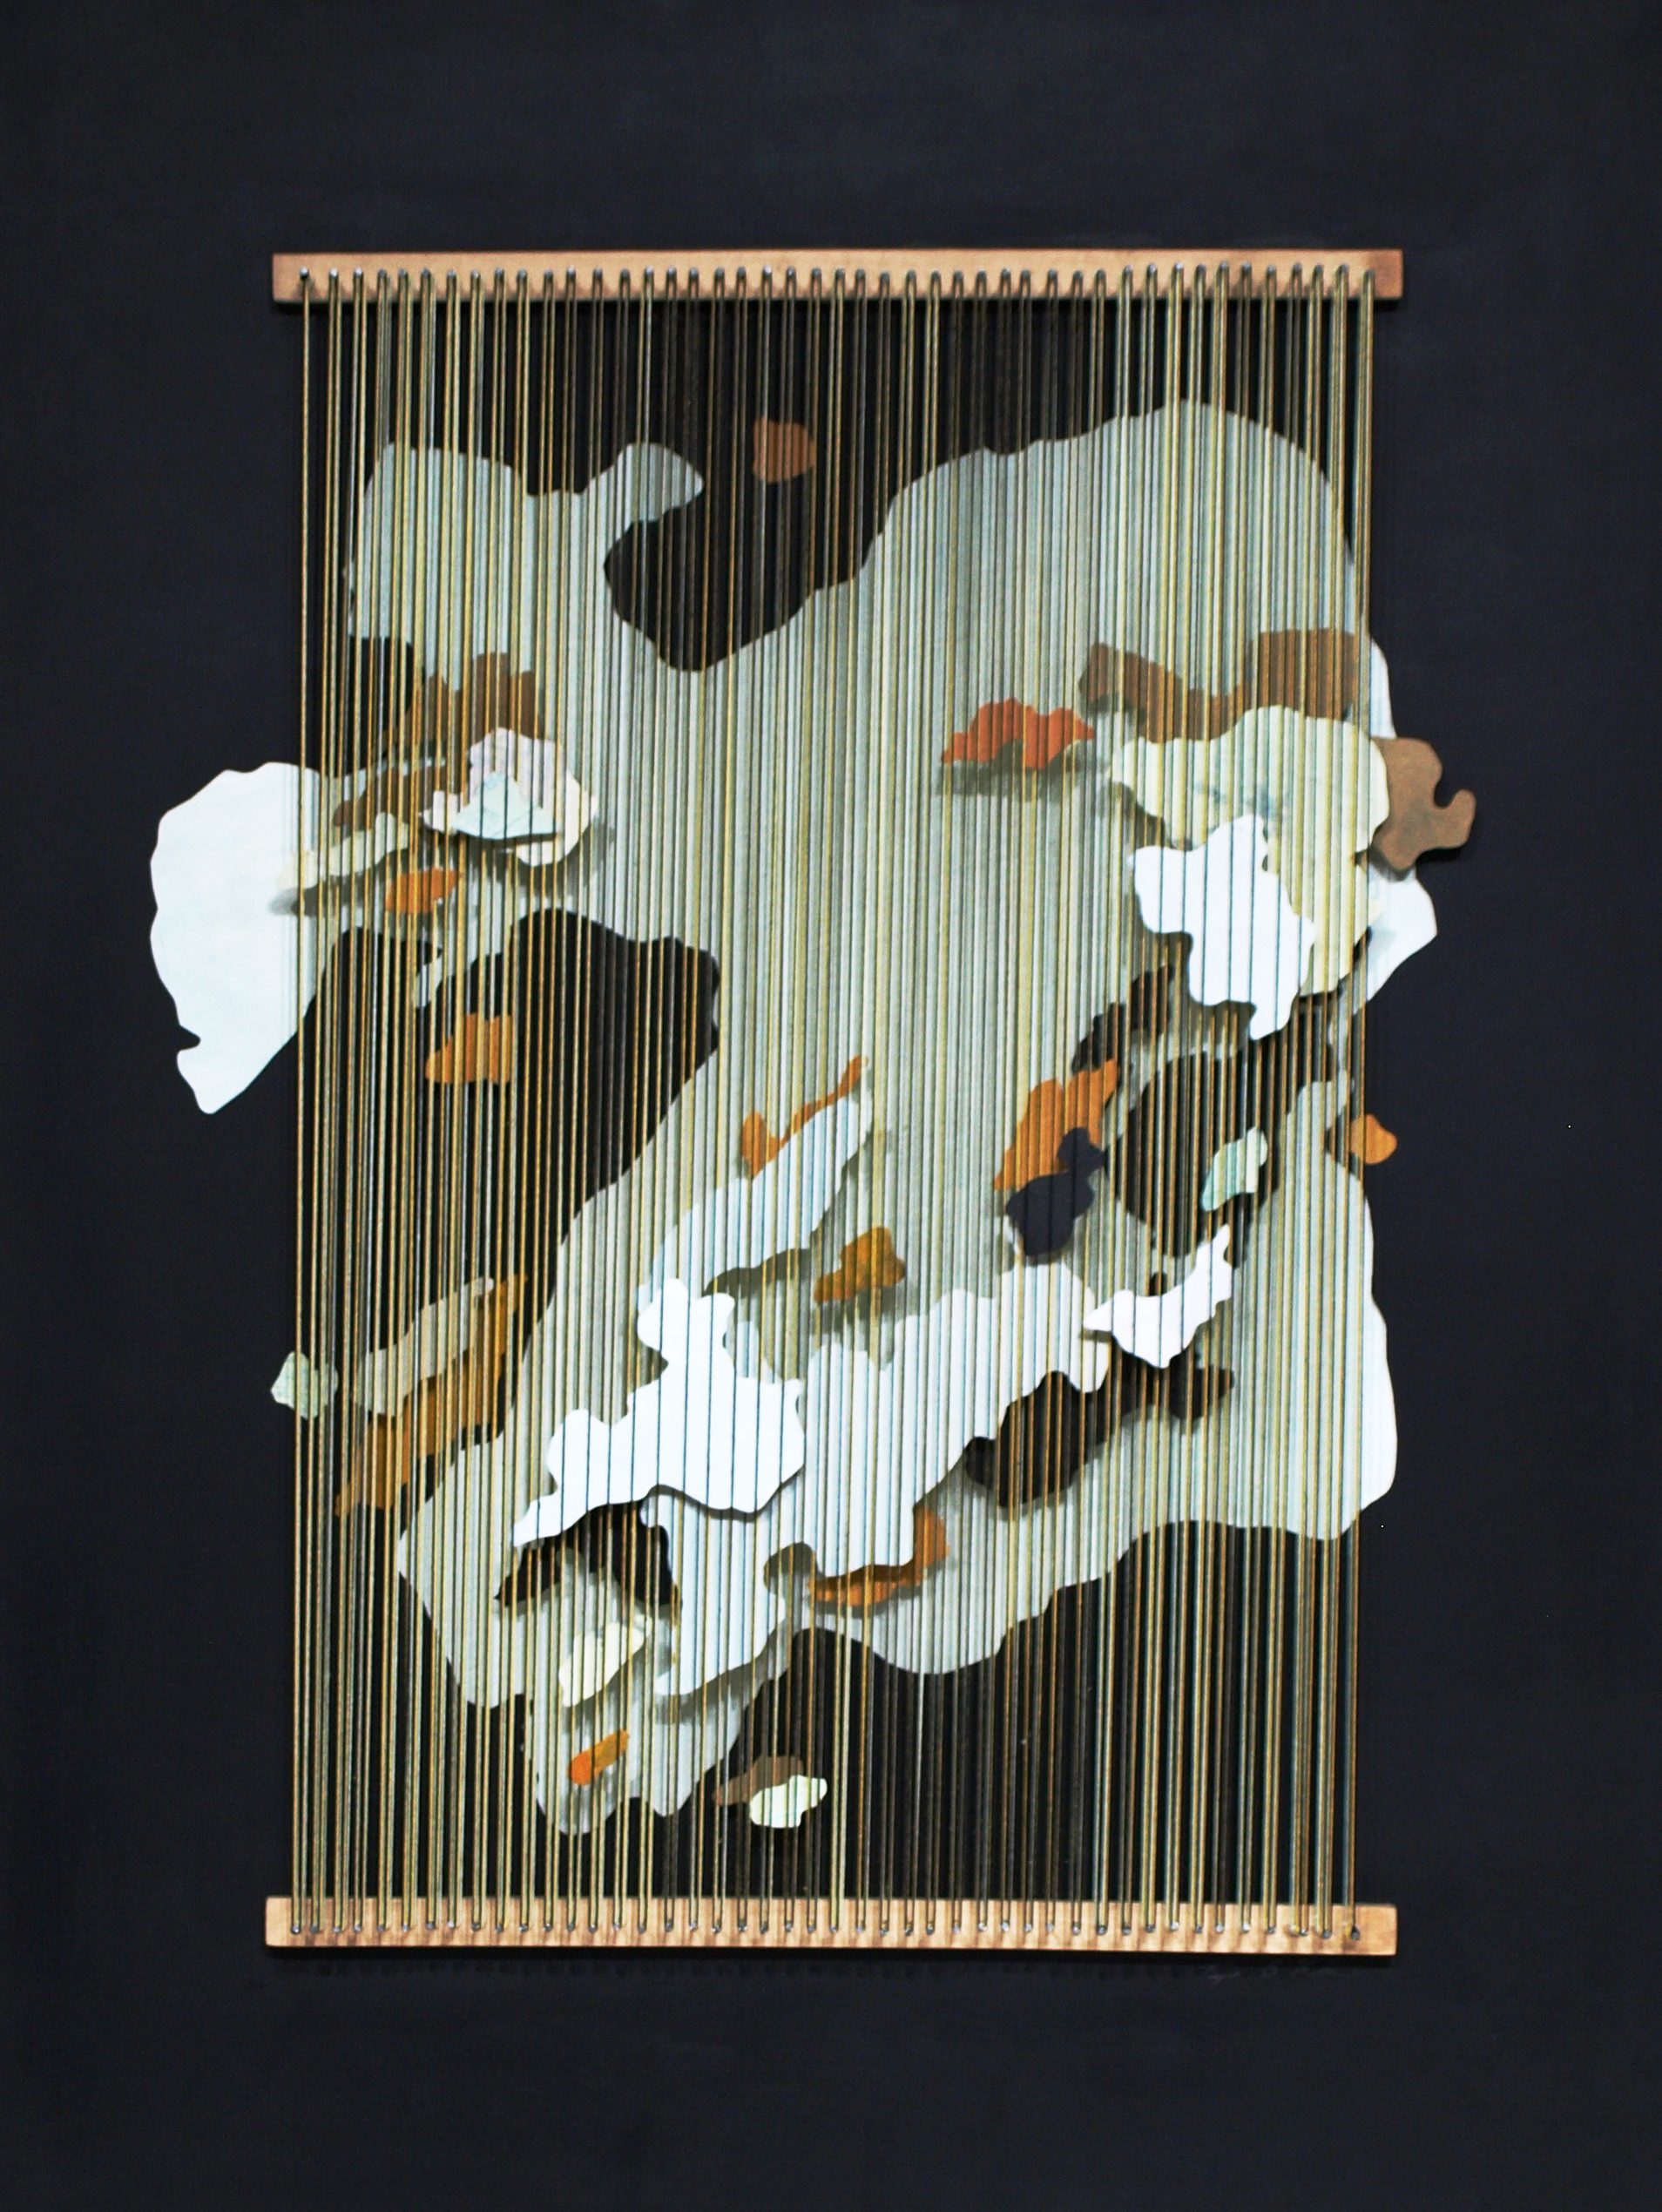 Tegan Brozyna Roberts,  Coptic I,  2018, Painted paper, thread, nails and wood, 24 1/2 x 18 3/4 inches